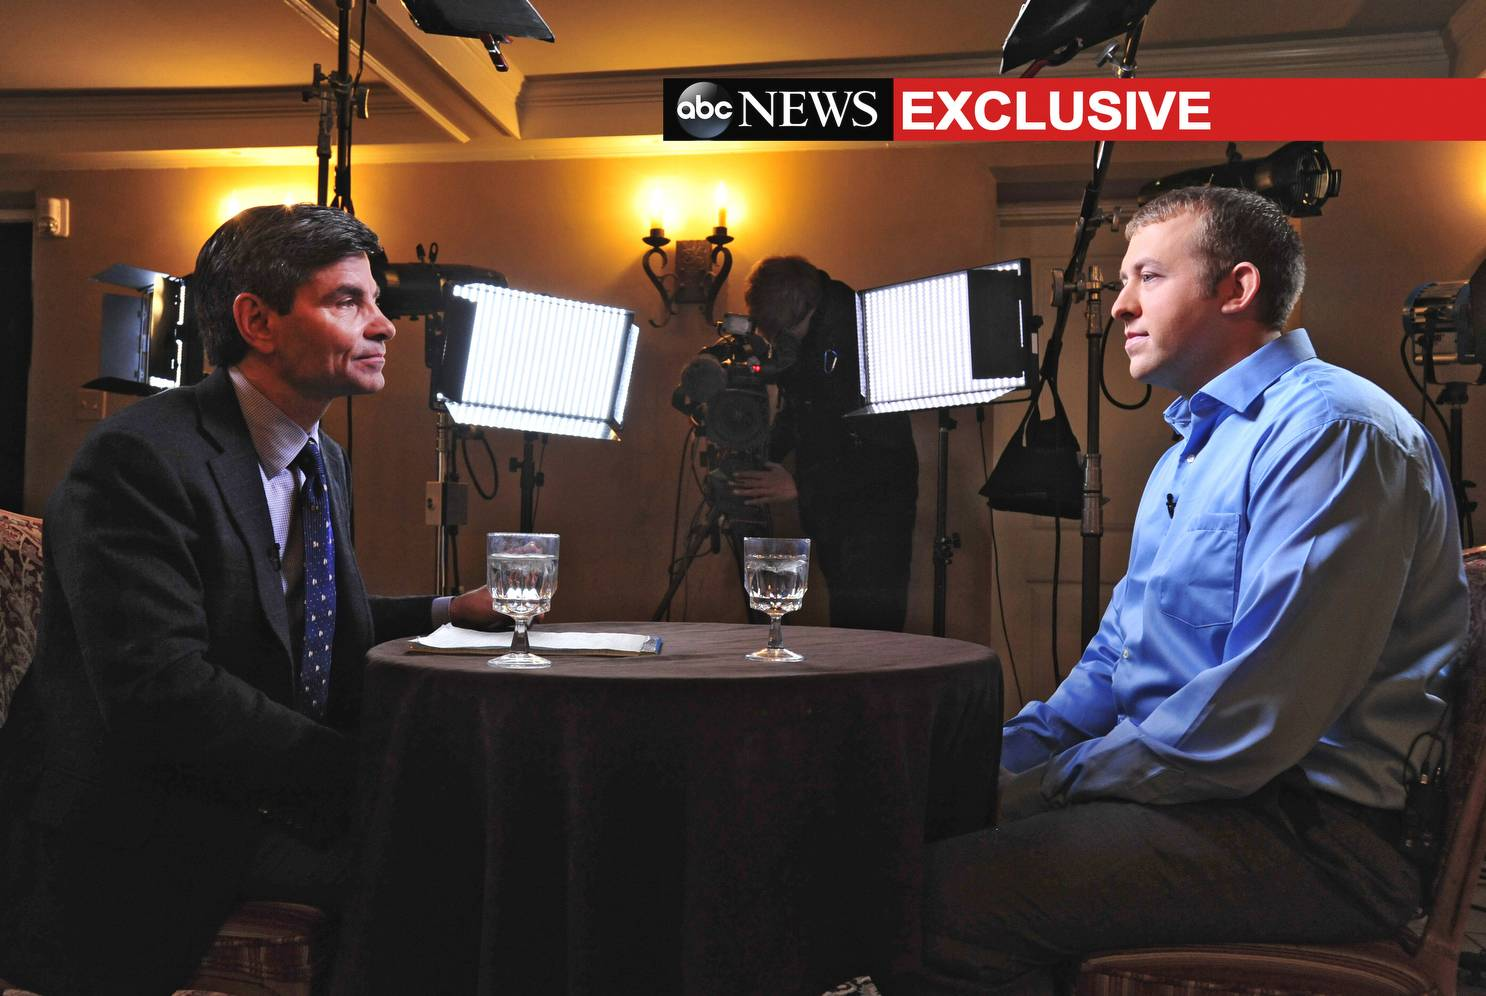 In this photo provided by ABC News, ABC News' chief anchor George Stephanopoulos, left, interviews Ferguson, MO., police officer Darren Wilson, Tuesday, Nov. 25, 2014 in Missouri. The interview will air during ABC News programs and platforms on Nov. 25 and 26. (AP Photo/ABC News, Kevin Lowder)